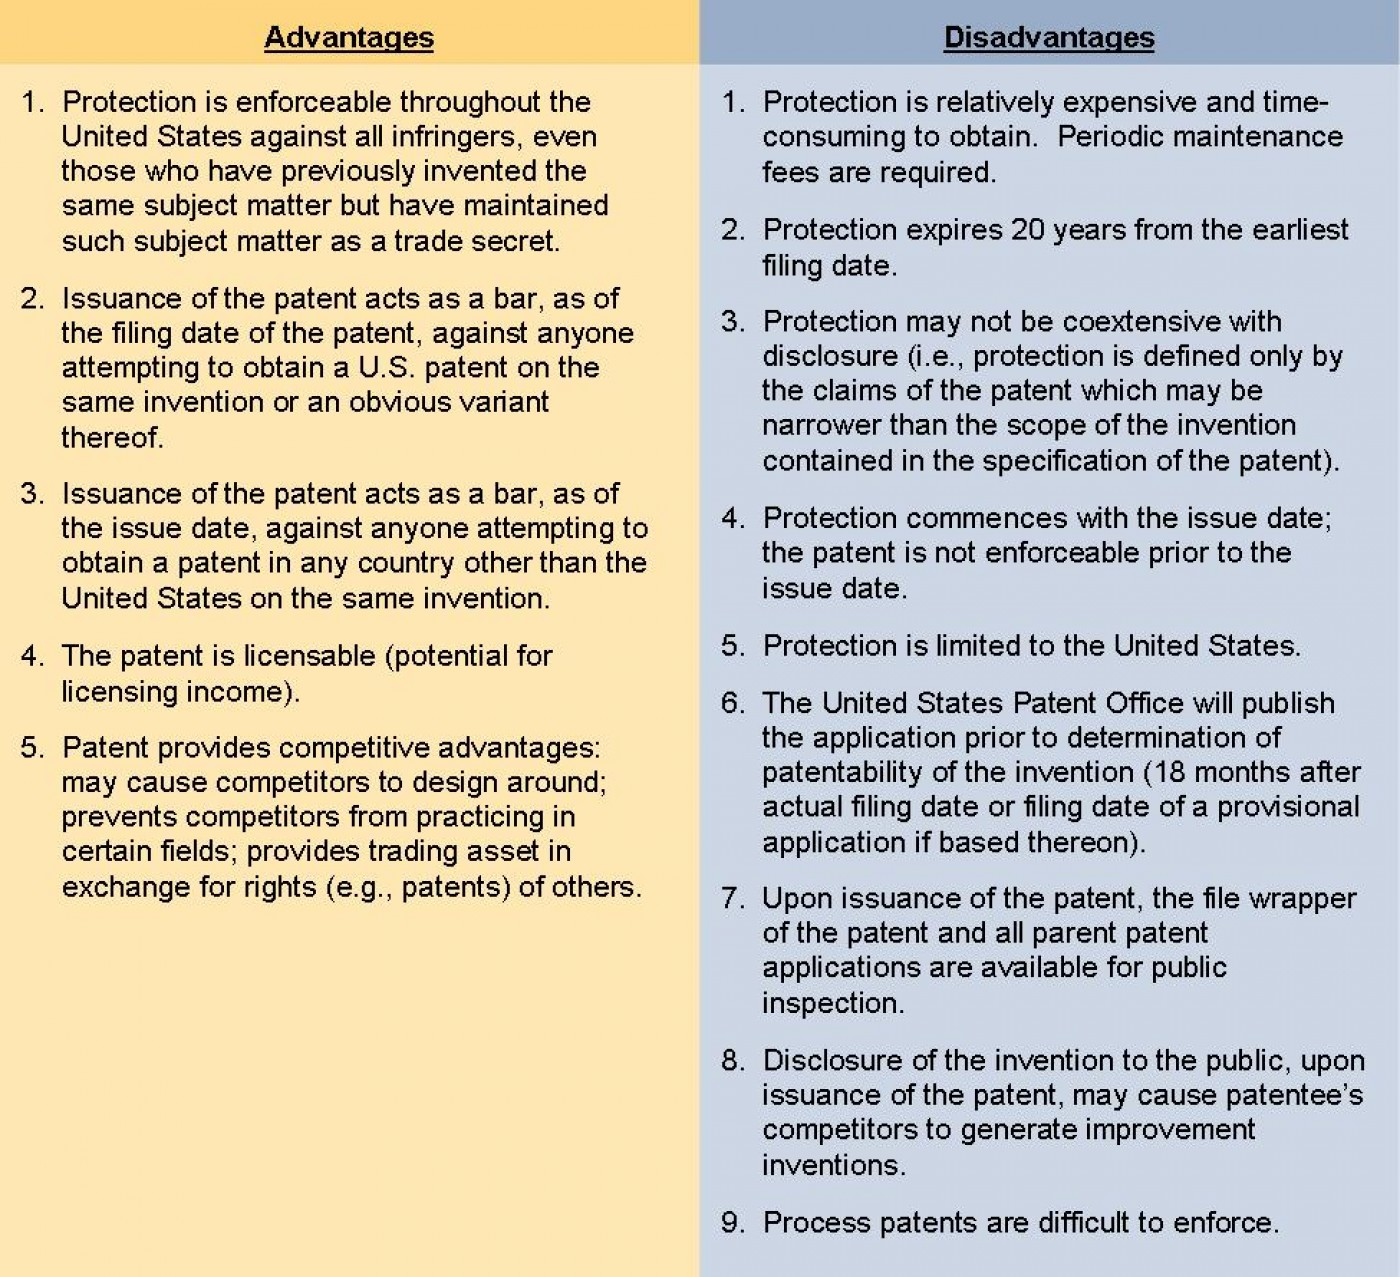 027 News87pic2 Advantage And Disadvantage Of Science Essay Shocking Advantages Disadvantages With Quotes In Tamil Language 1400